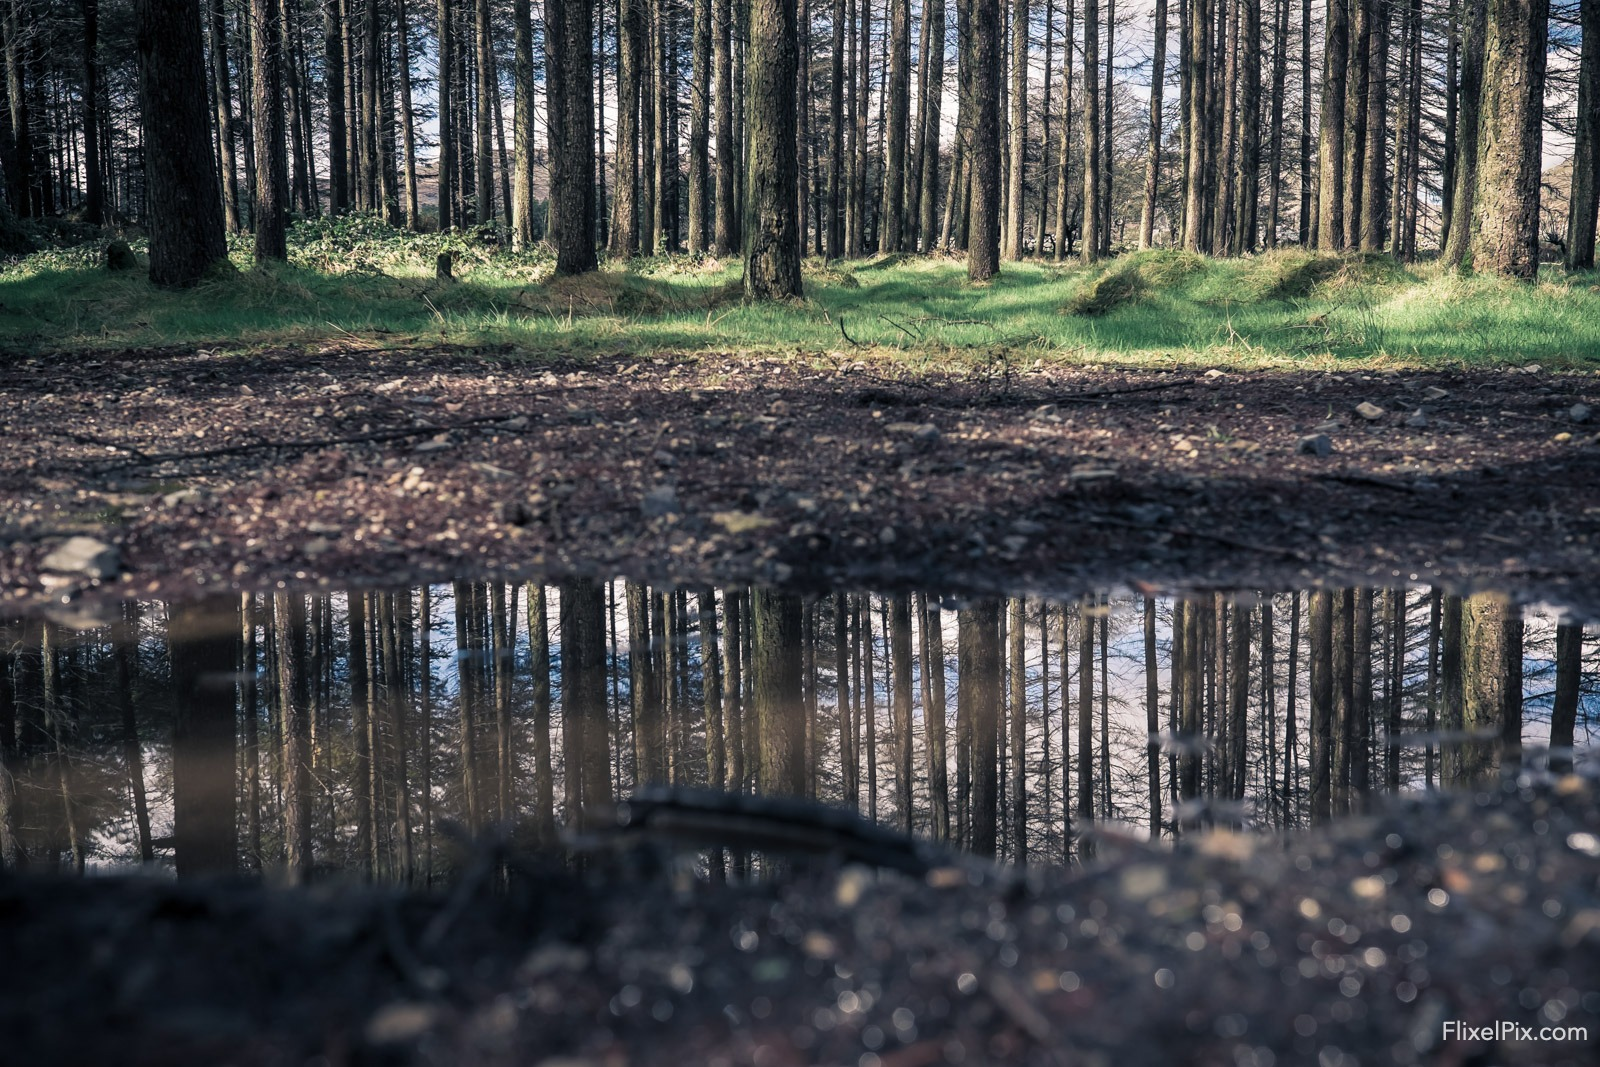 photographing puddles